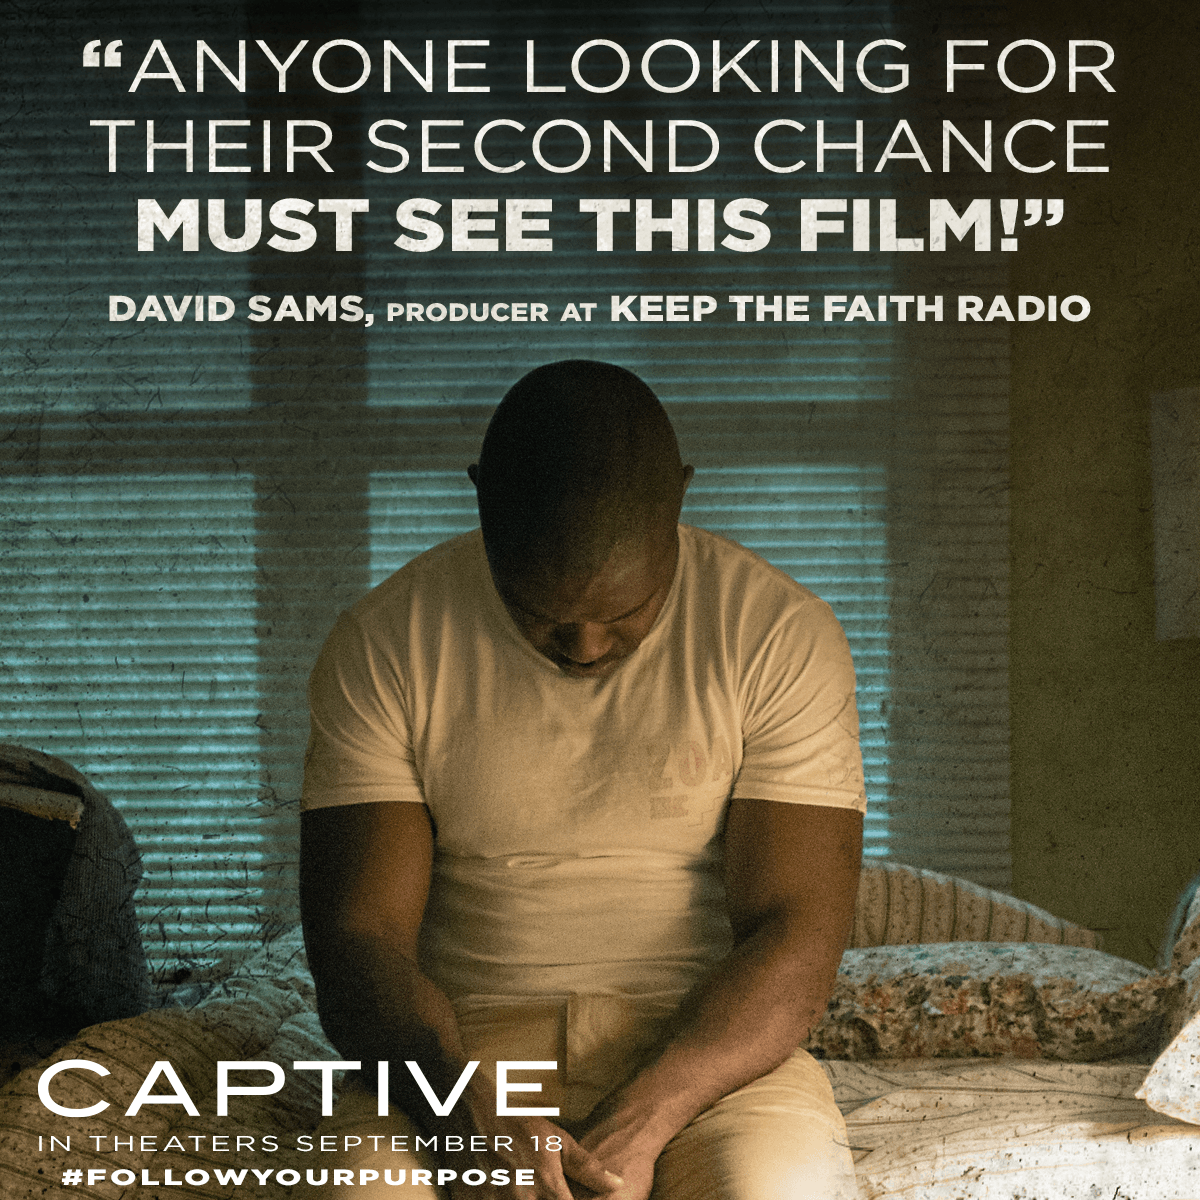 Captive Movie Review